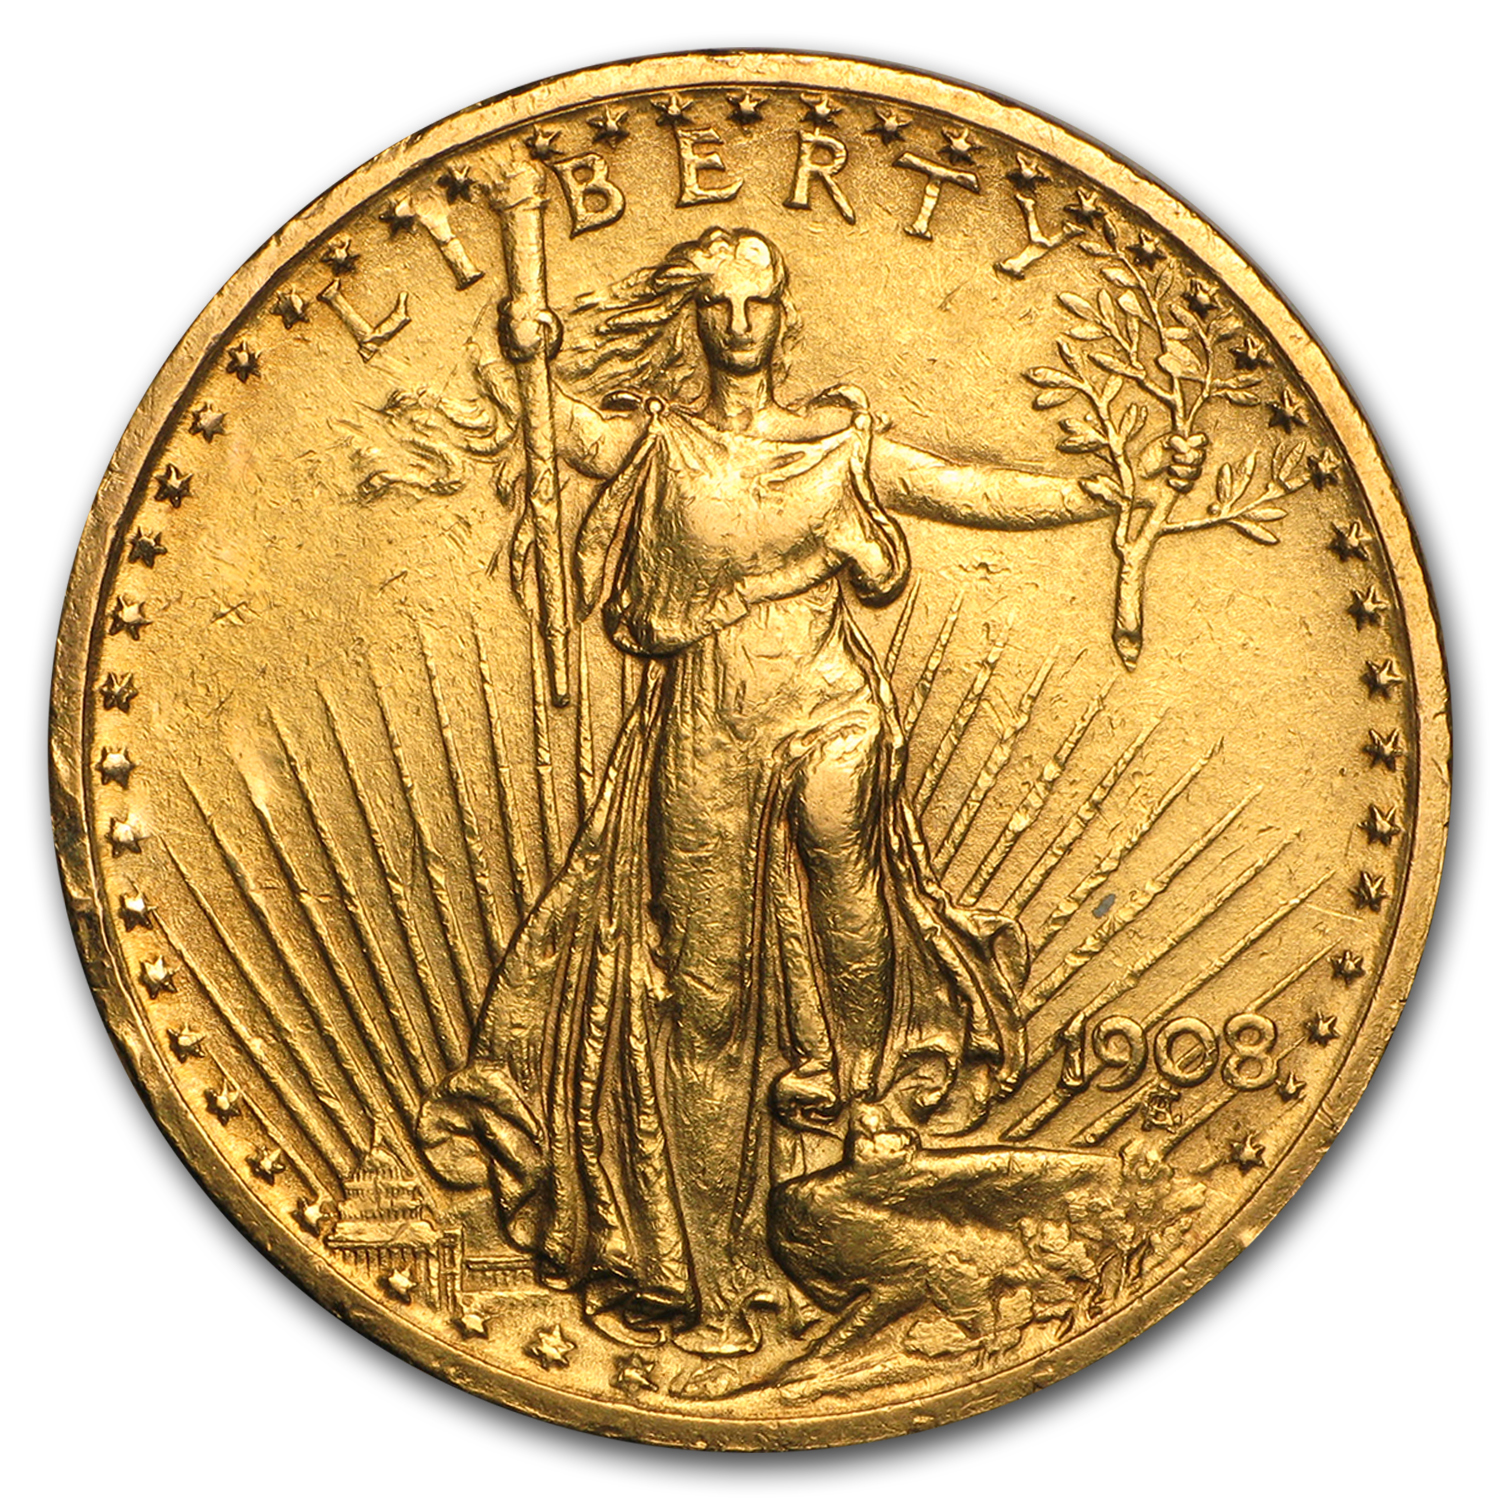 1908 $20 St. Gaudens Gold Double Eagle - W/Motto (Cleaned)